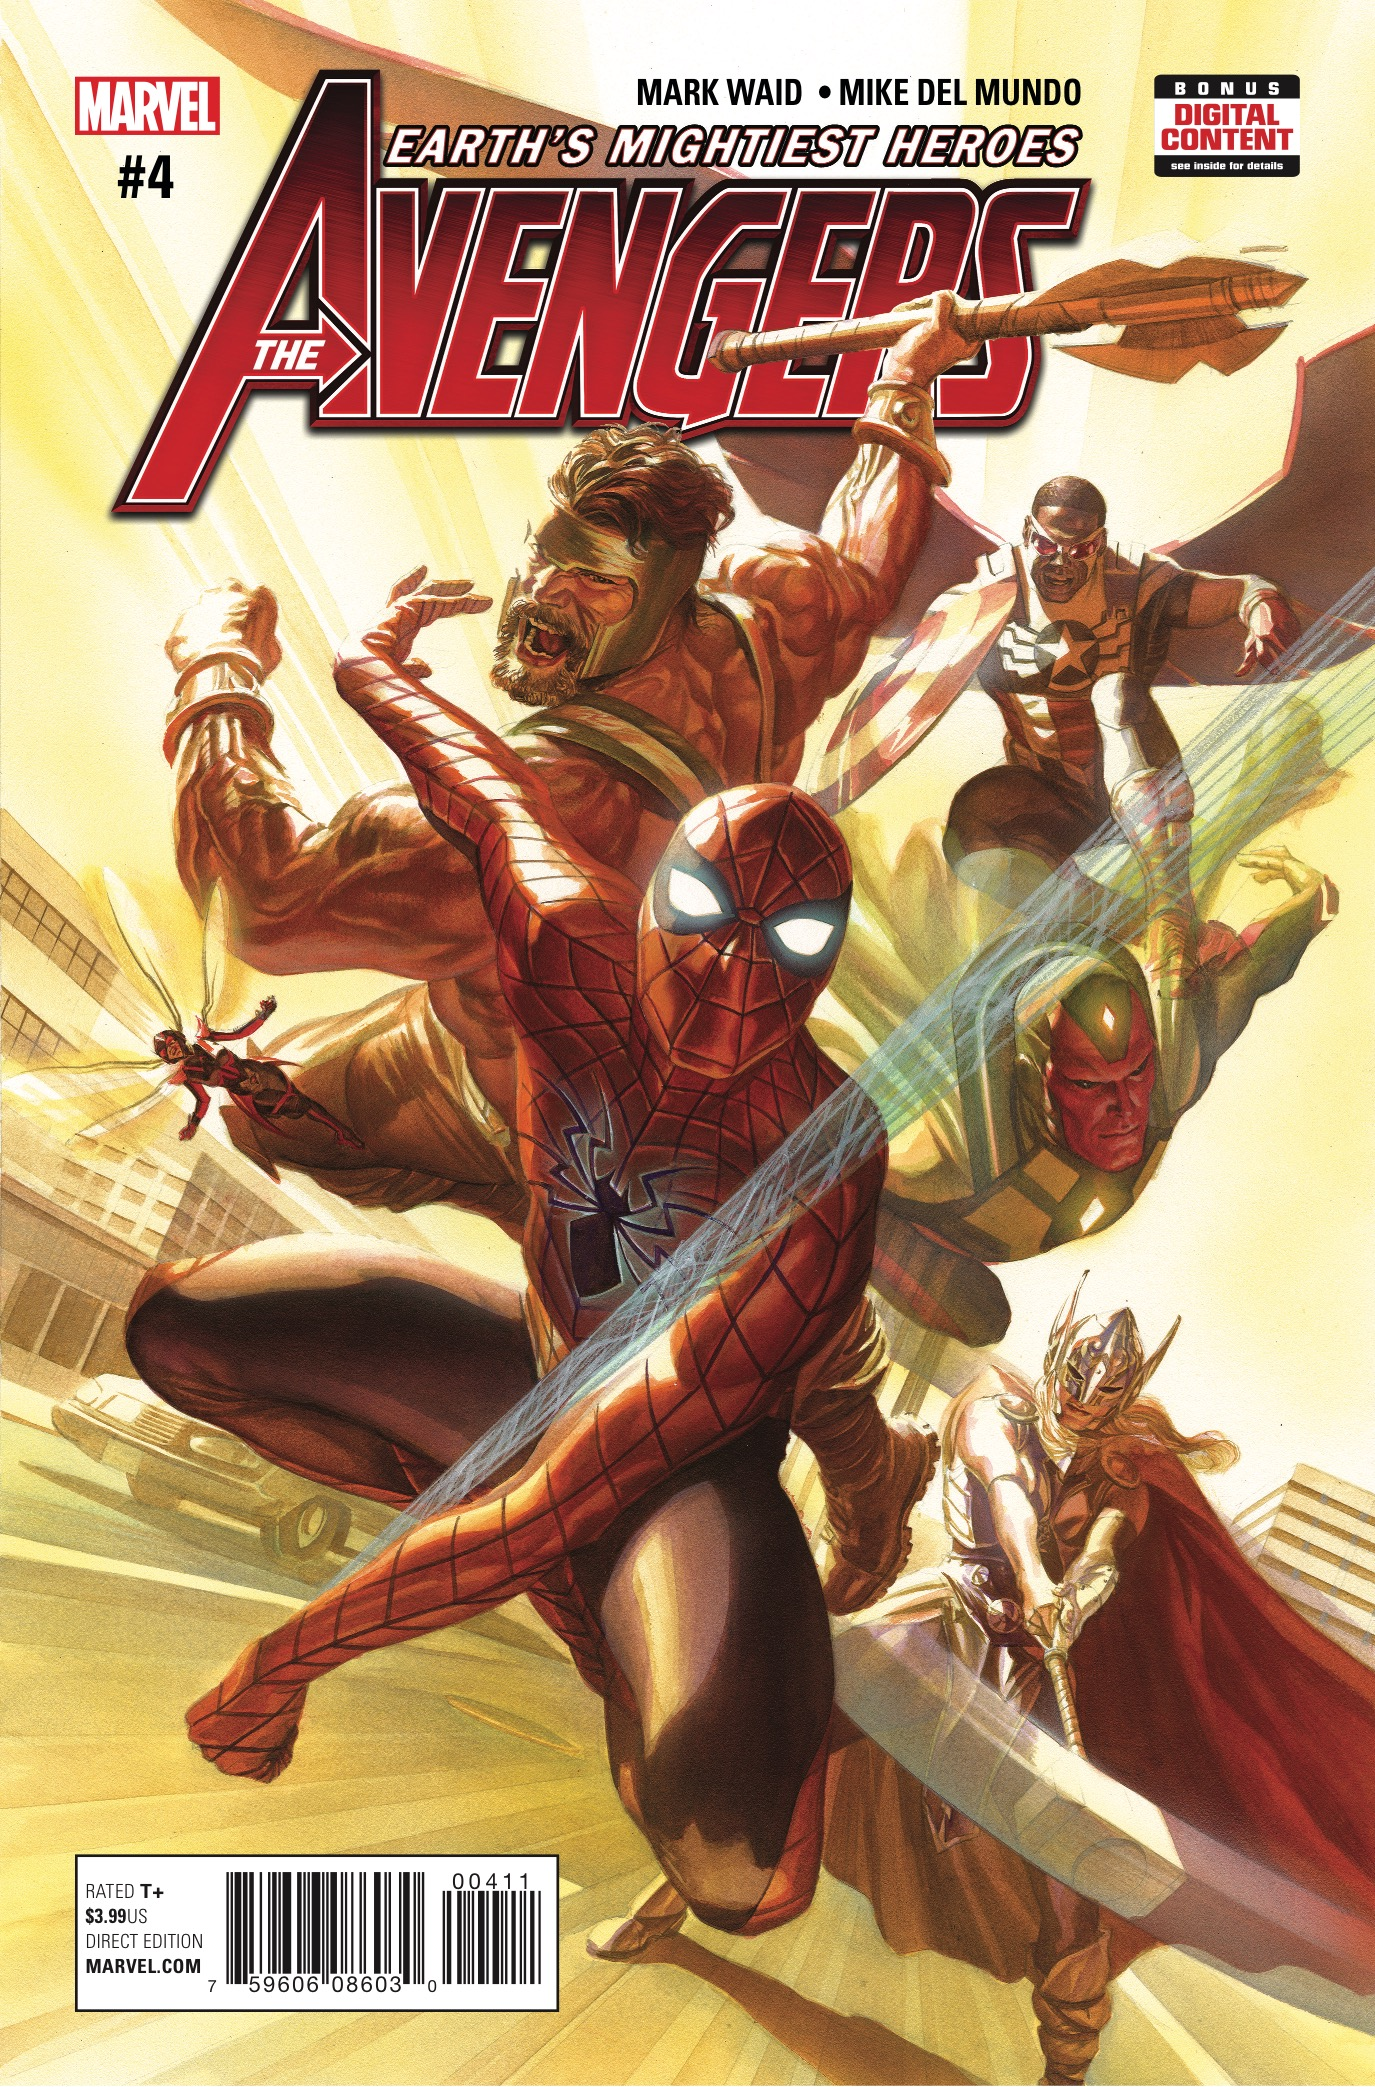 [EXCLUSIVE] Marvel Preview: Avengers #4